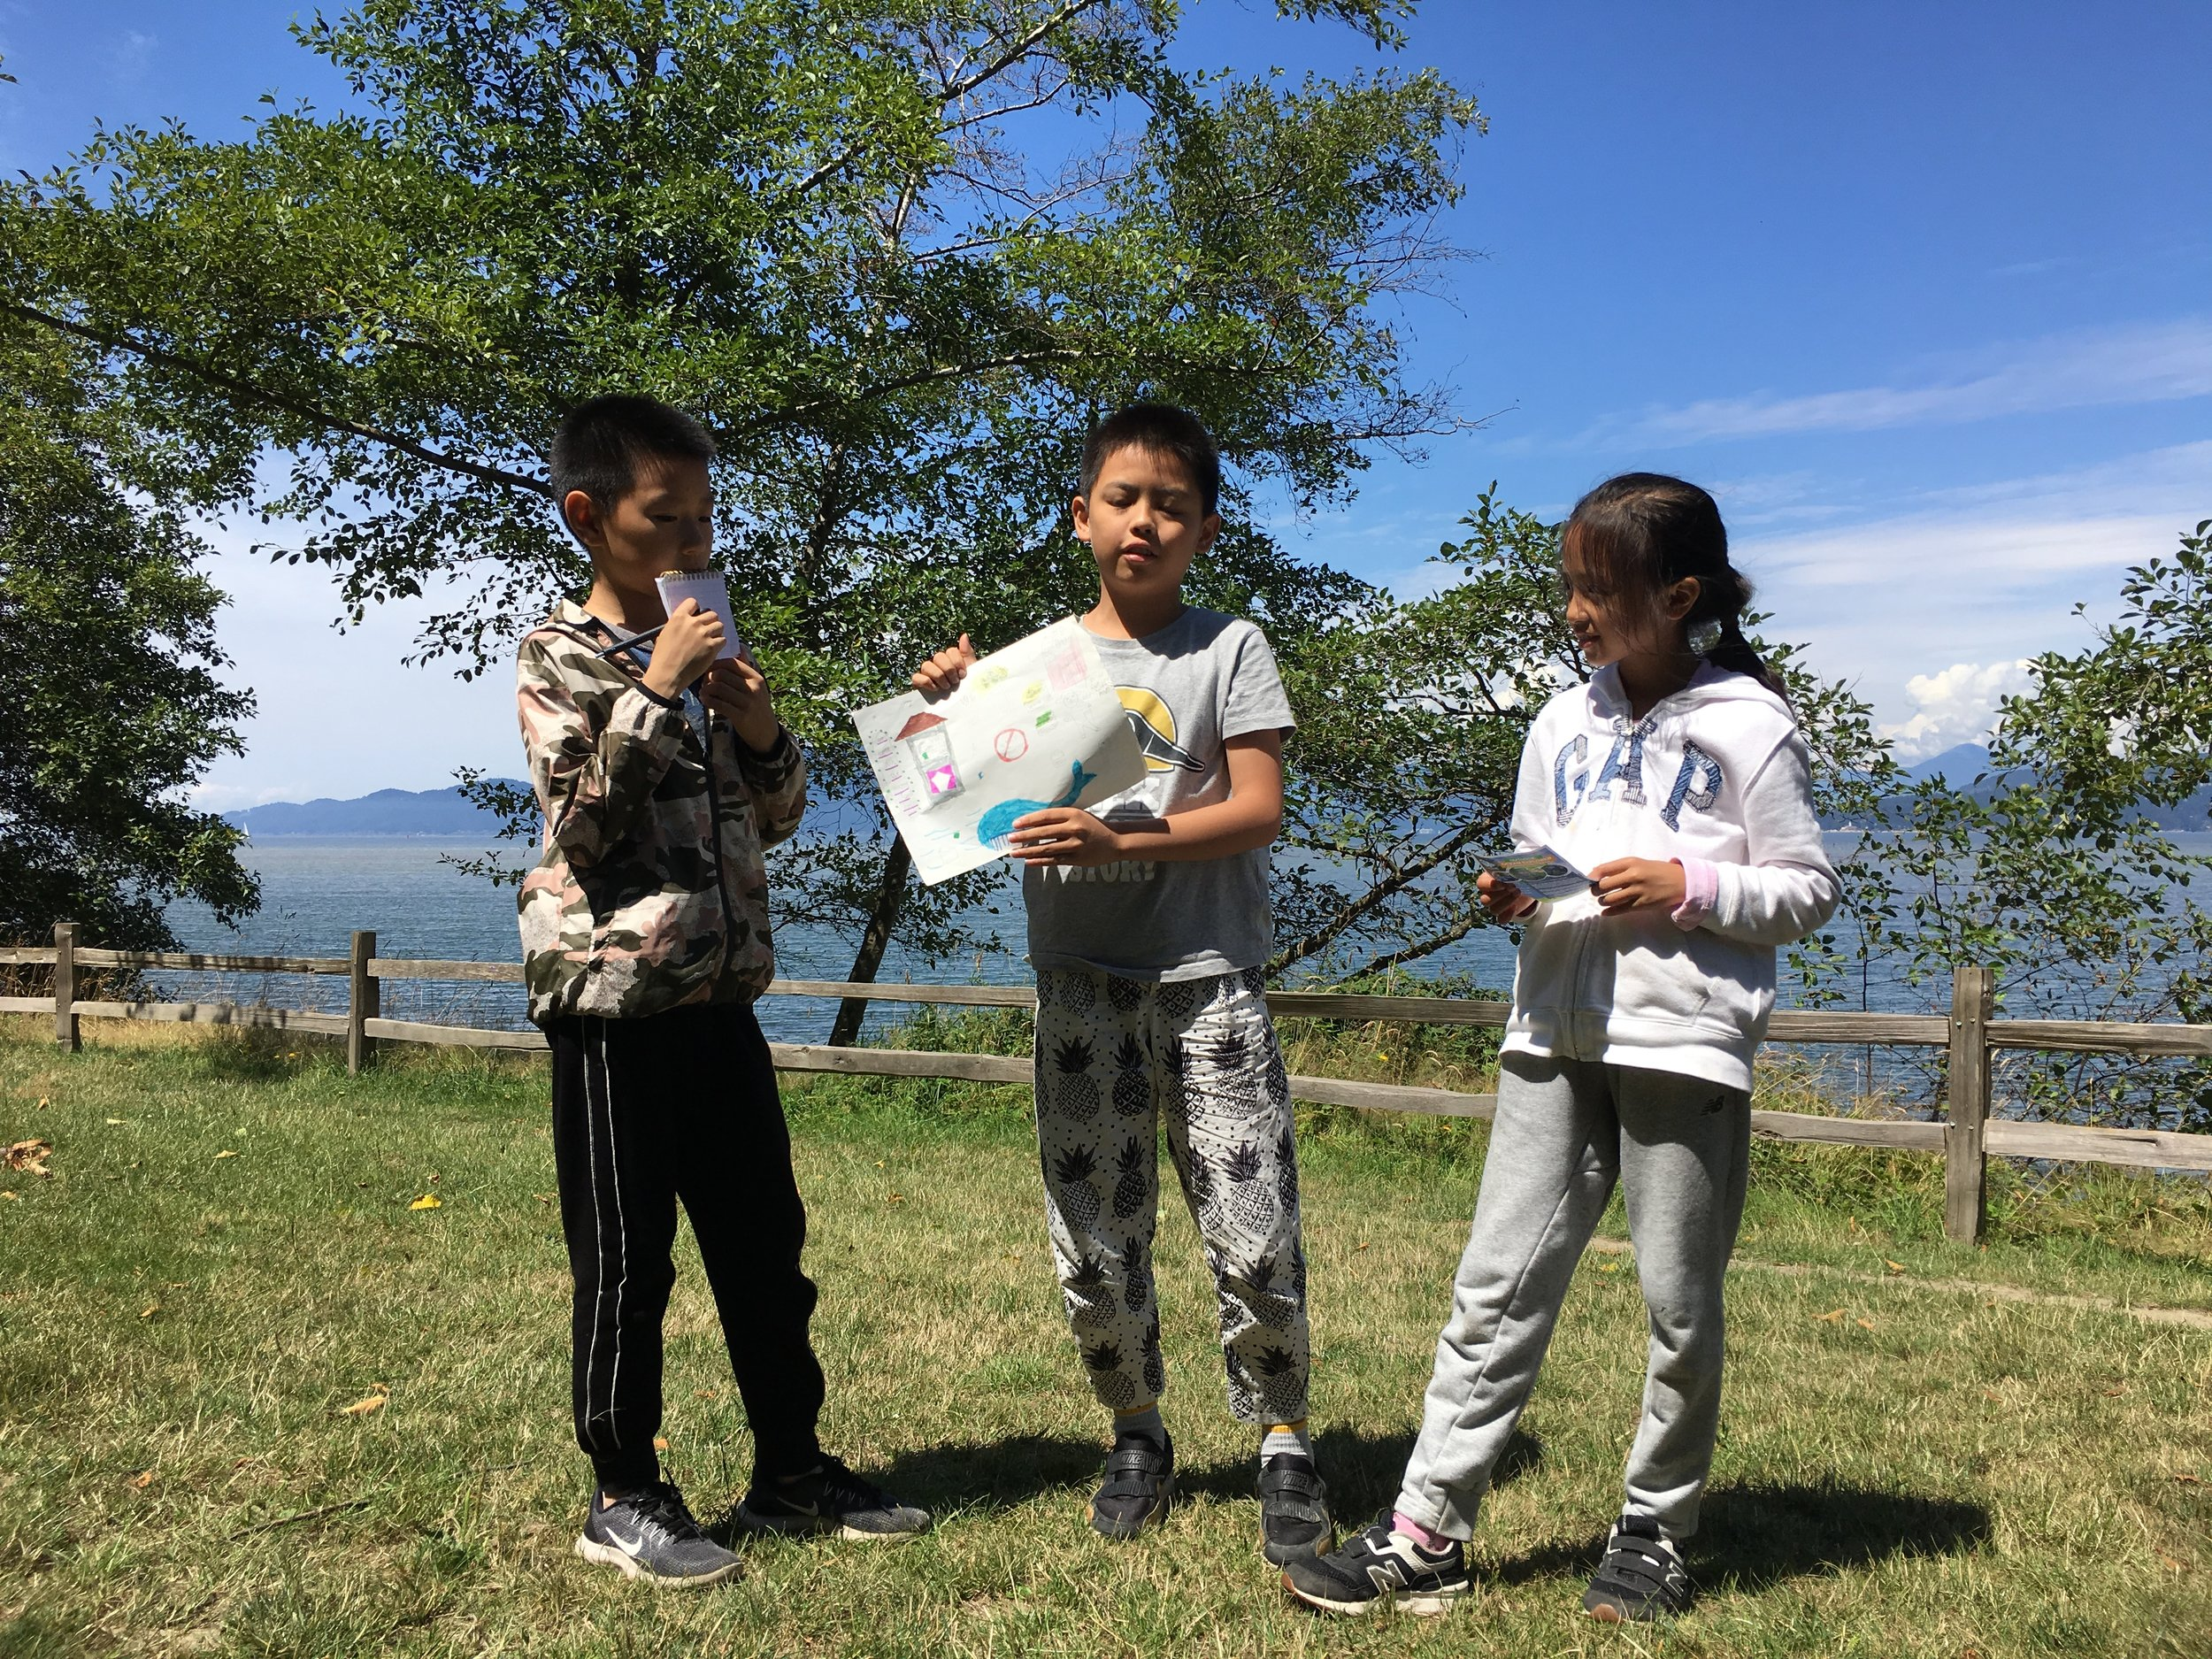 Sea Smart students explaining their Ocean Awareness Project about the need for more shoreline clean ups to protect marine life.